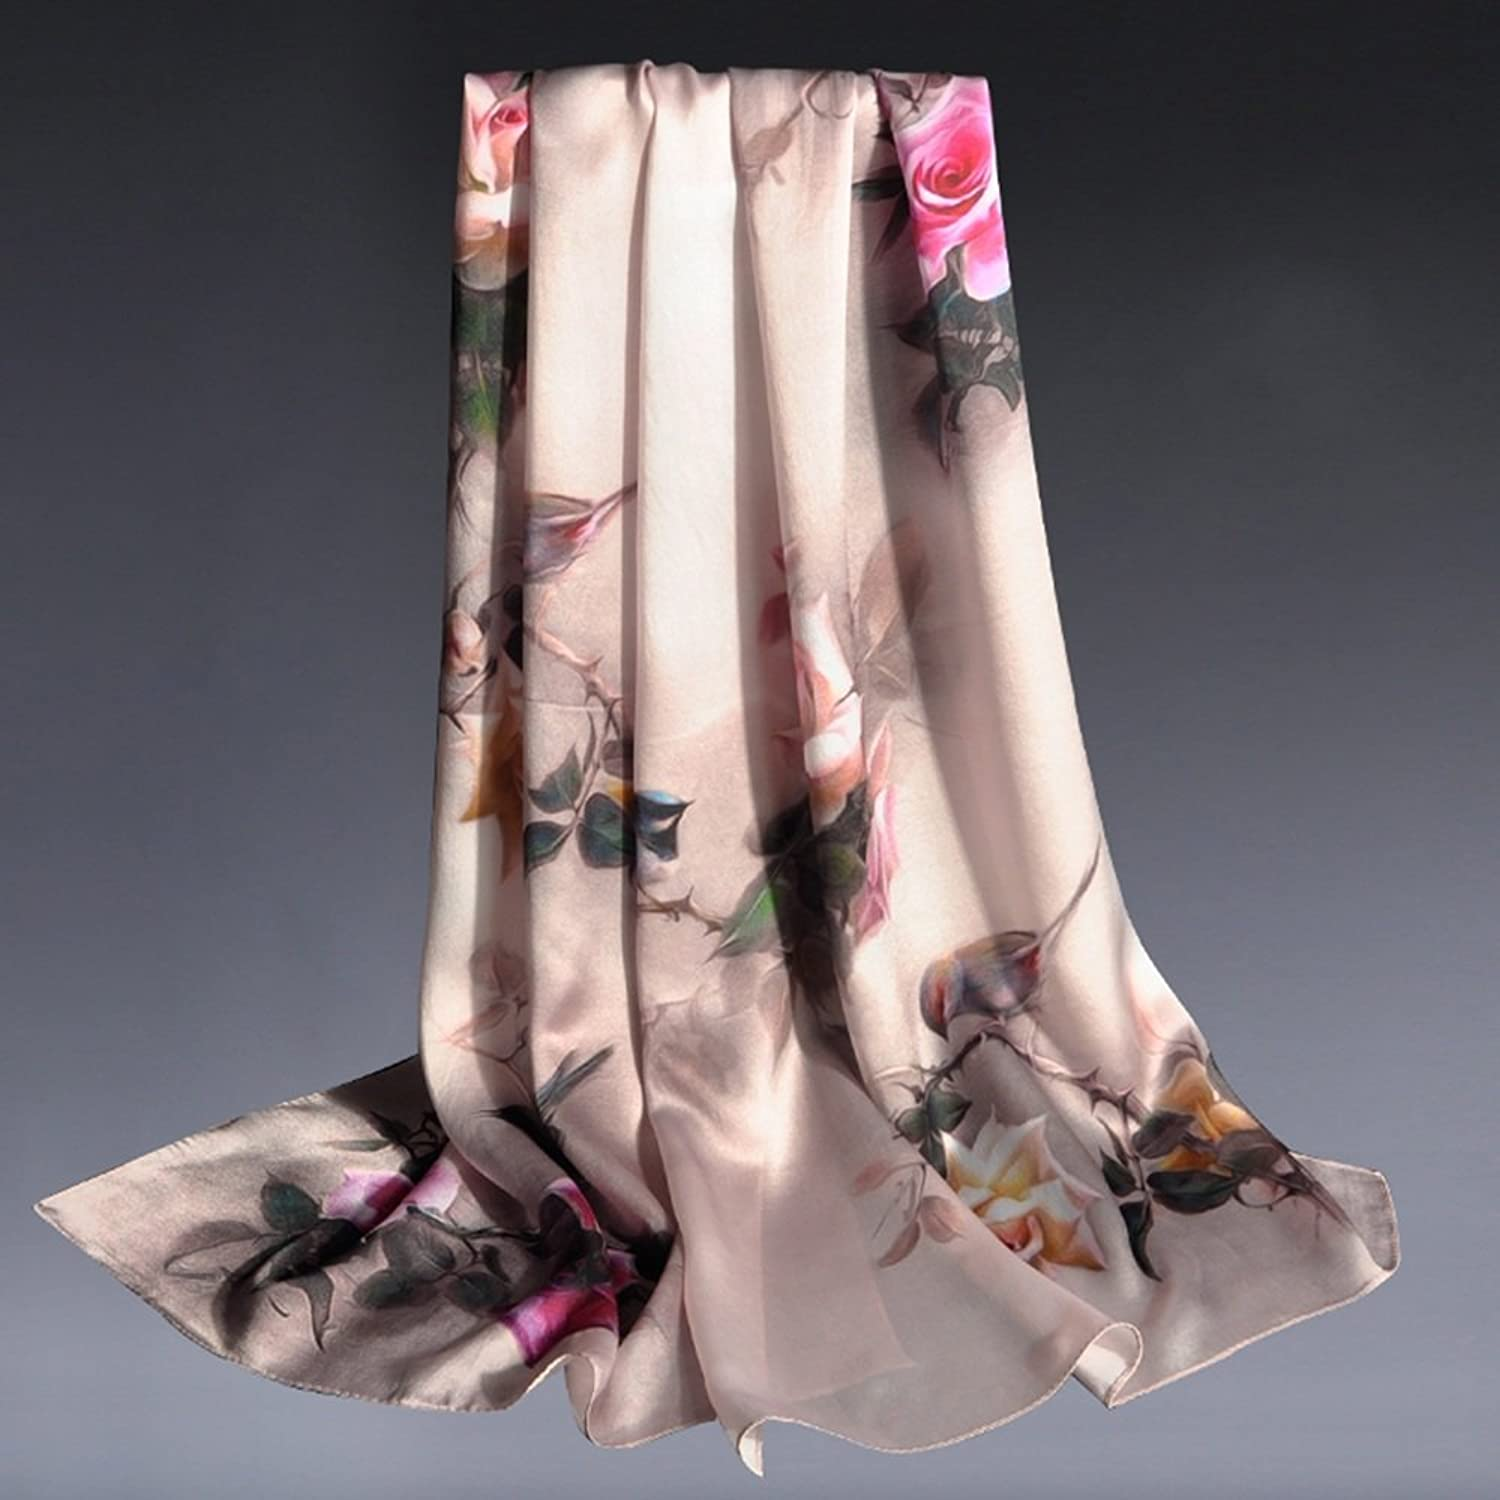 HAIYU Scarves Scarves 100% Mulberry Silk Women Party Casual Fall Winter 7 colors (color   6)